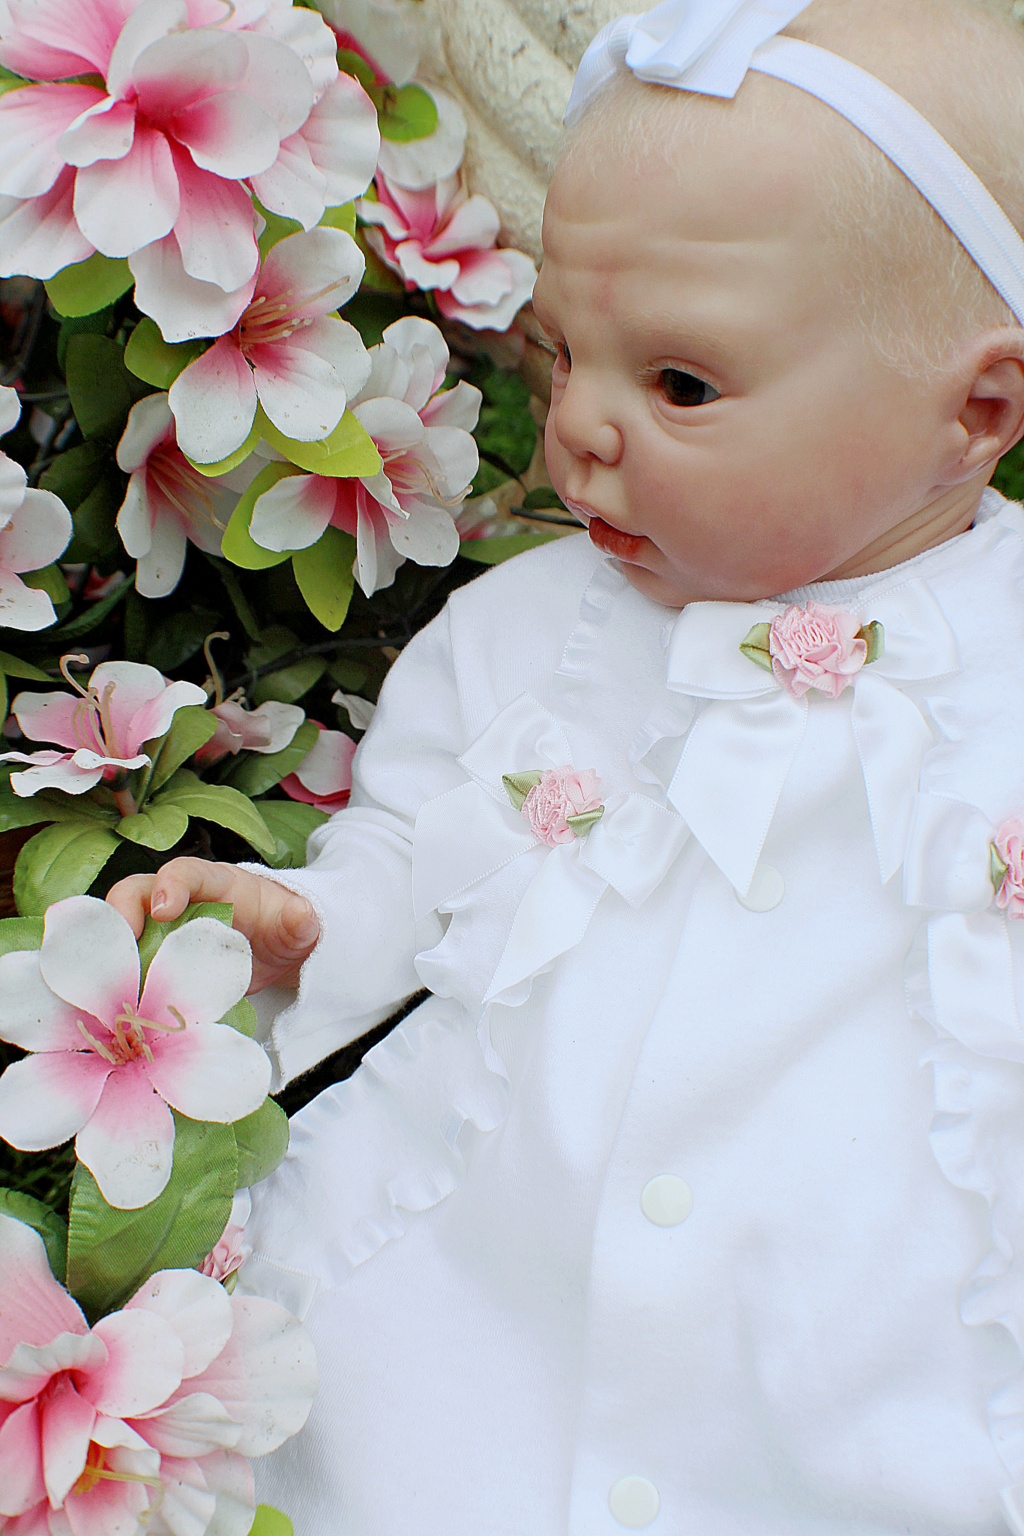 Easter Baby Contest  Baby1a10